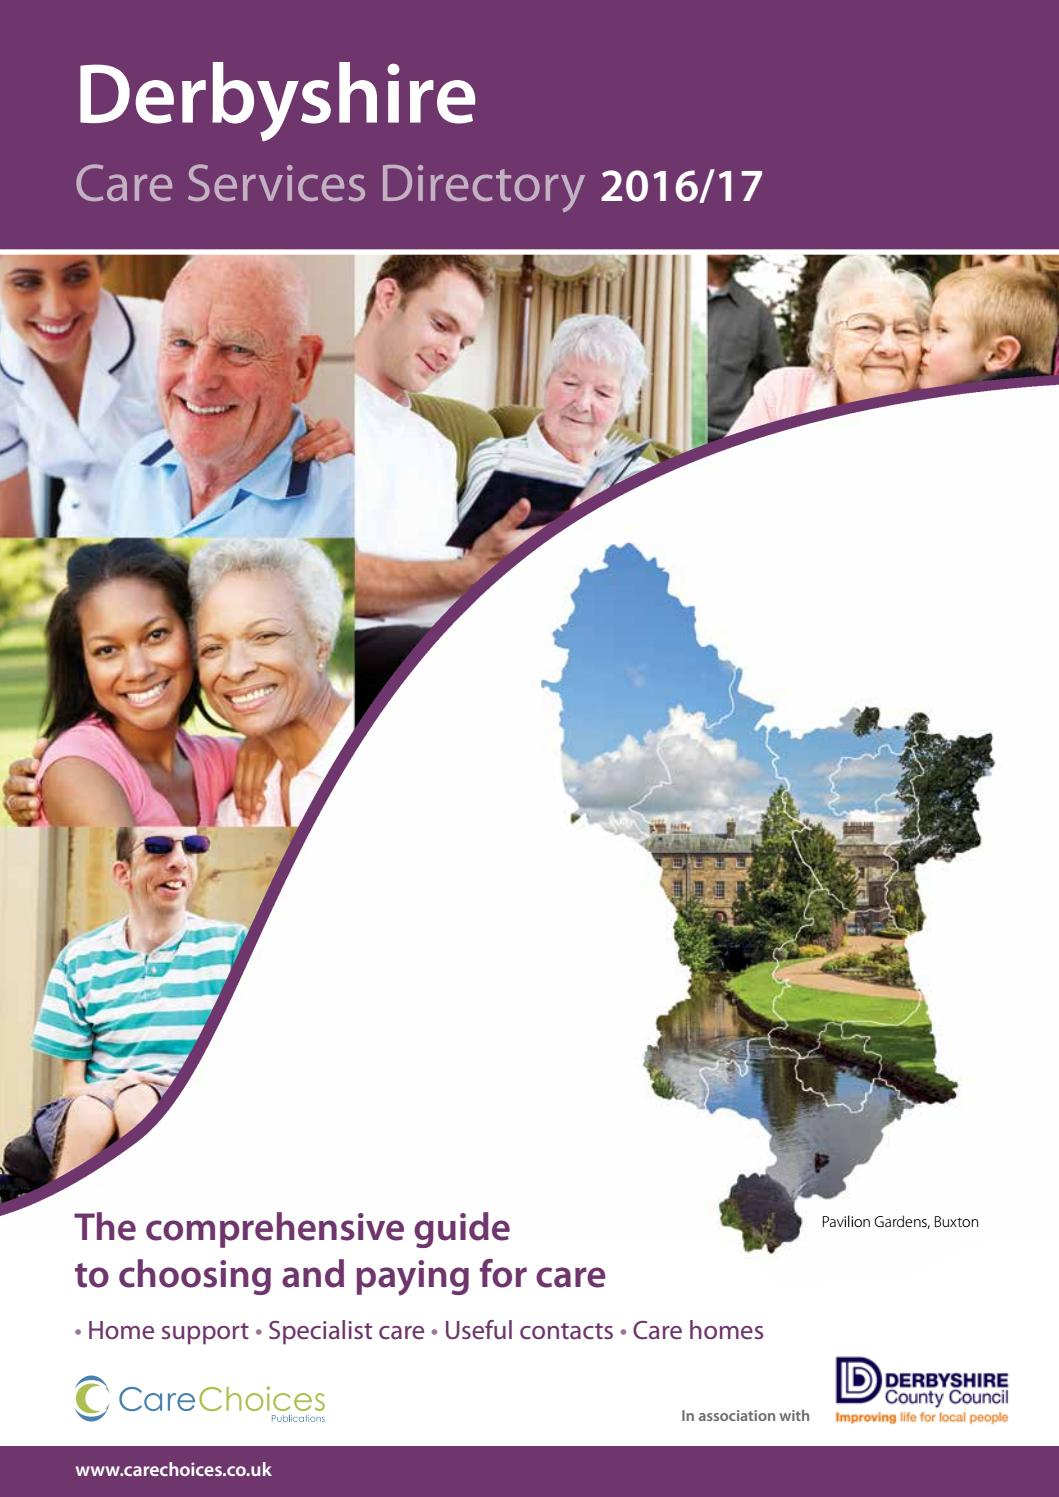 Derbyshire Care Services Directory 2016/17 by Care Choices